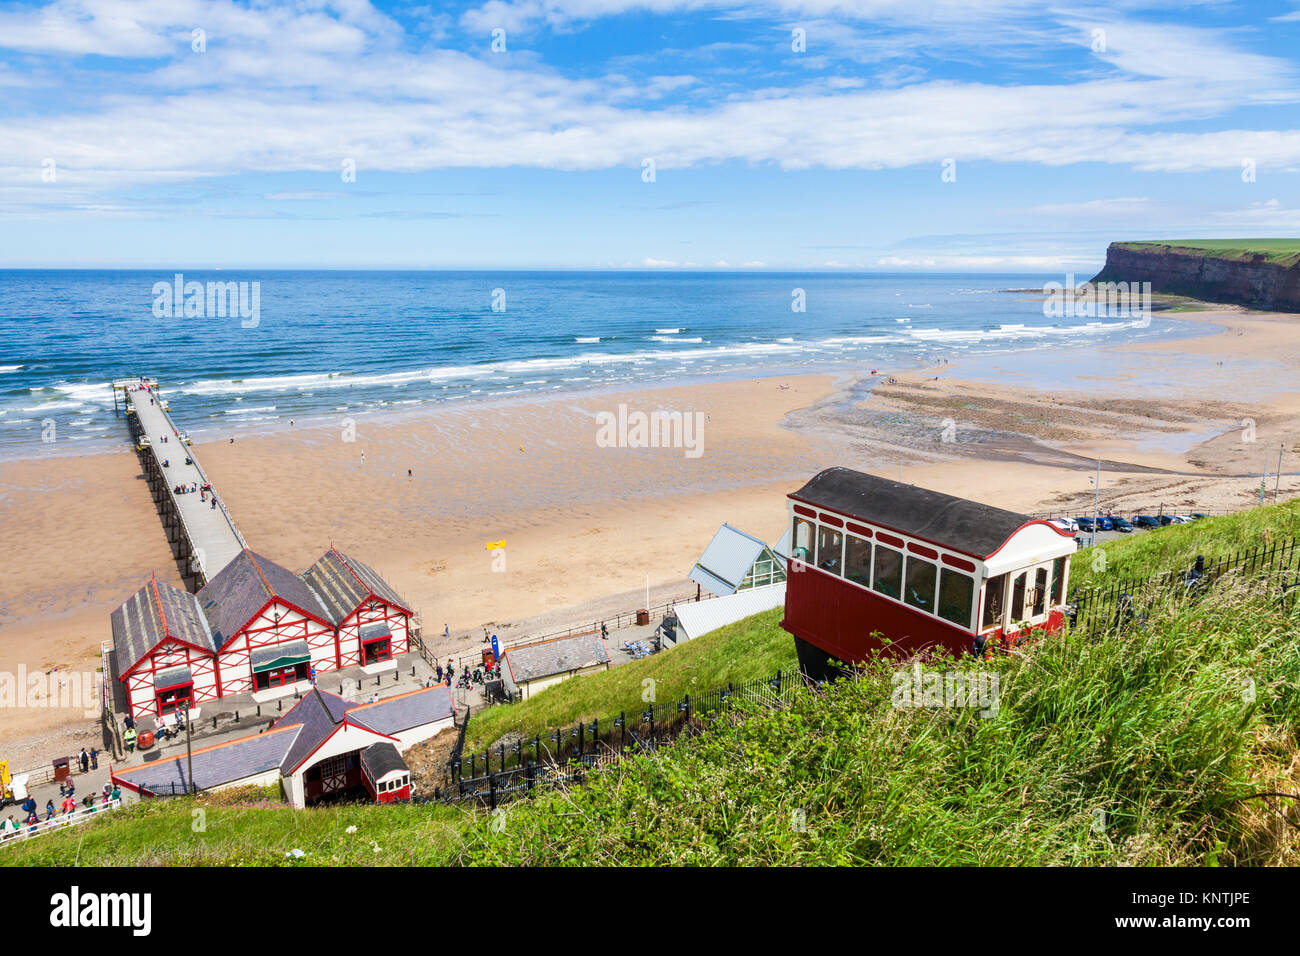 England saltburn by the sea England tramway saltburn cliff railway saltburn cliff tramway saltburn North Yorkshire - Stock Image